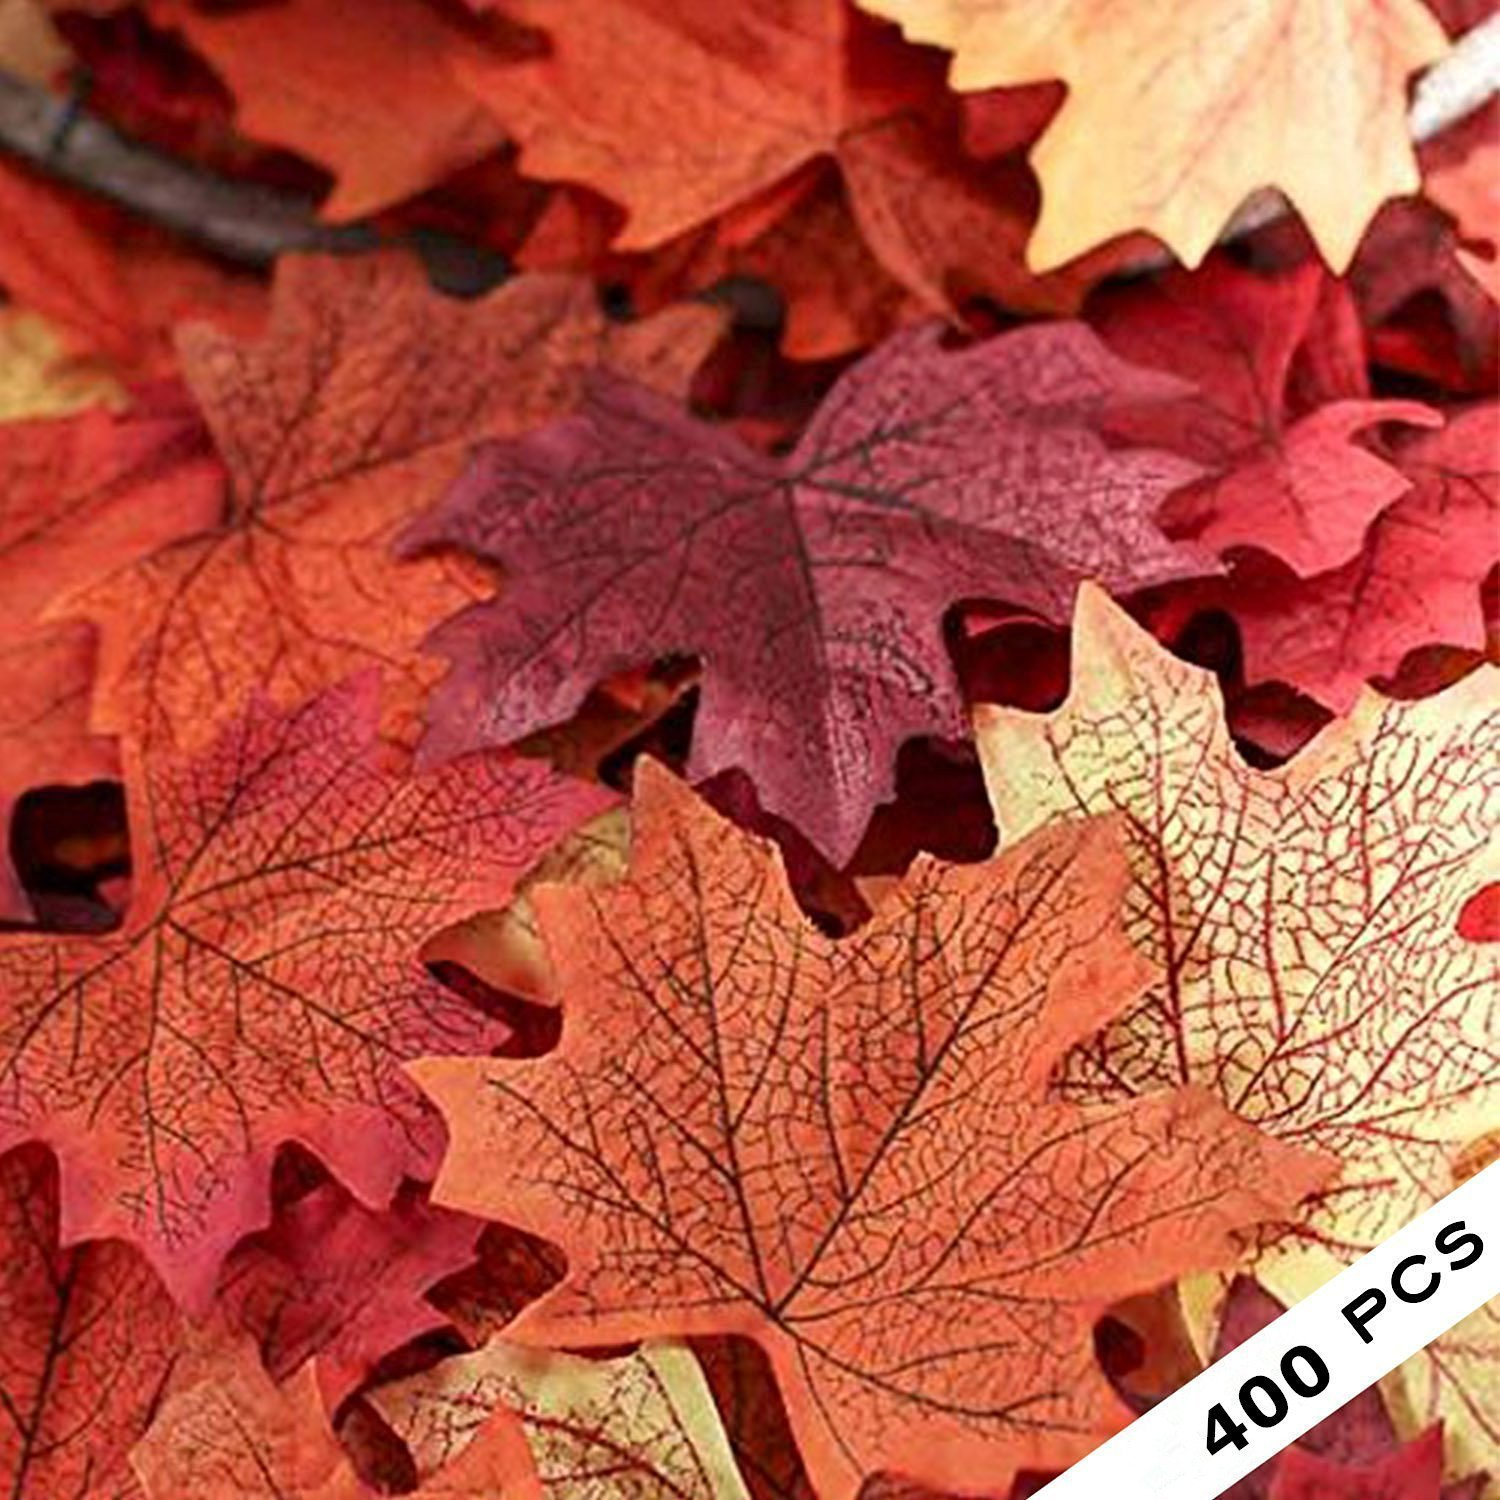 COSYWORLD 400 Assorted Mixed Fall Colored Artificial Maple Leaves for Weddings, Events and Decorating by COSYWORLD